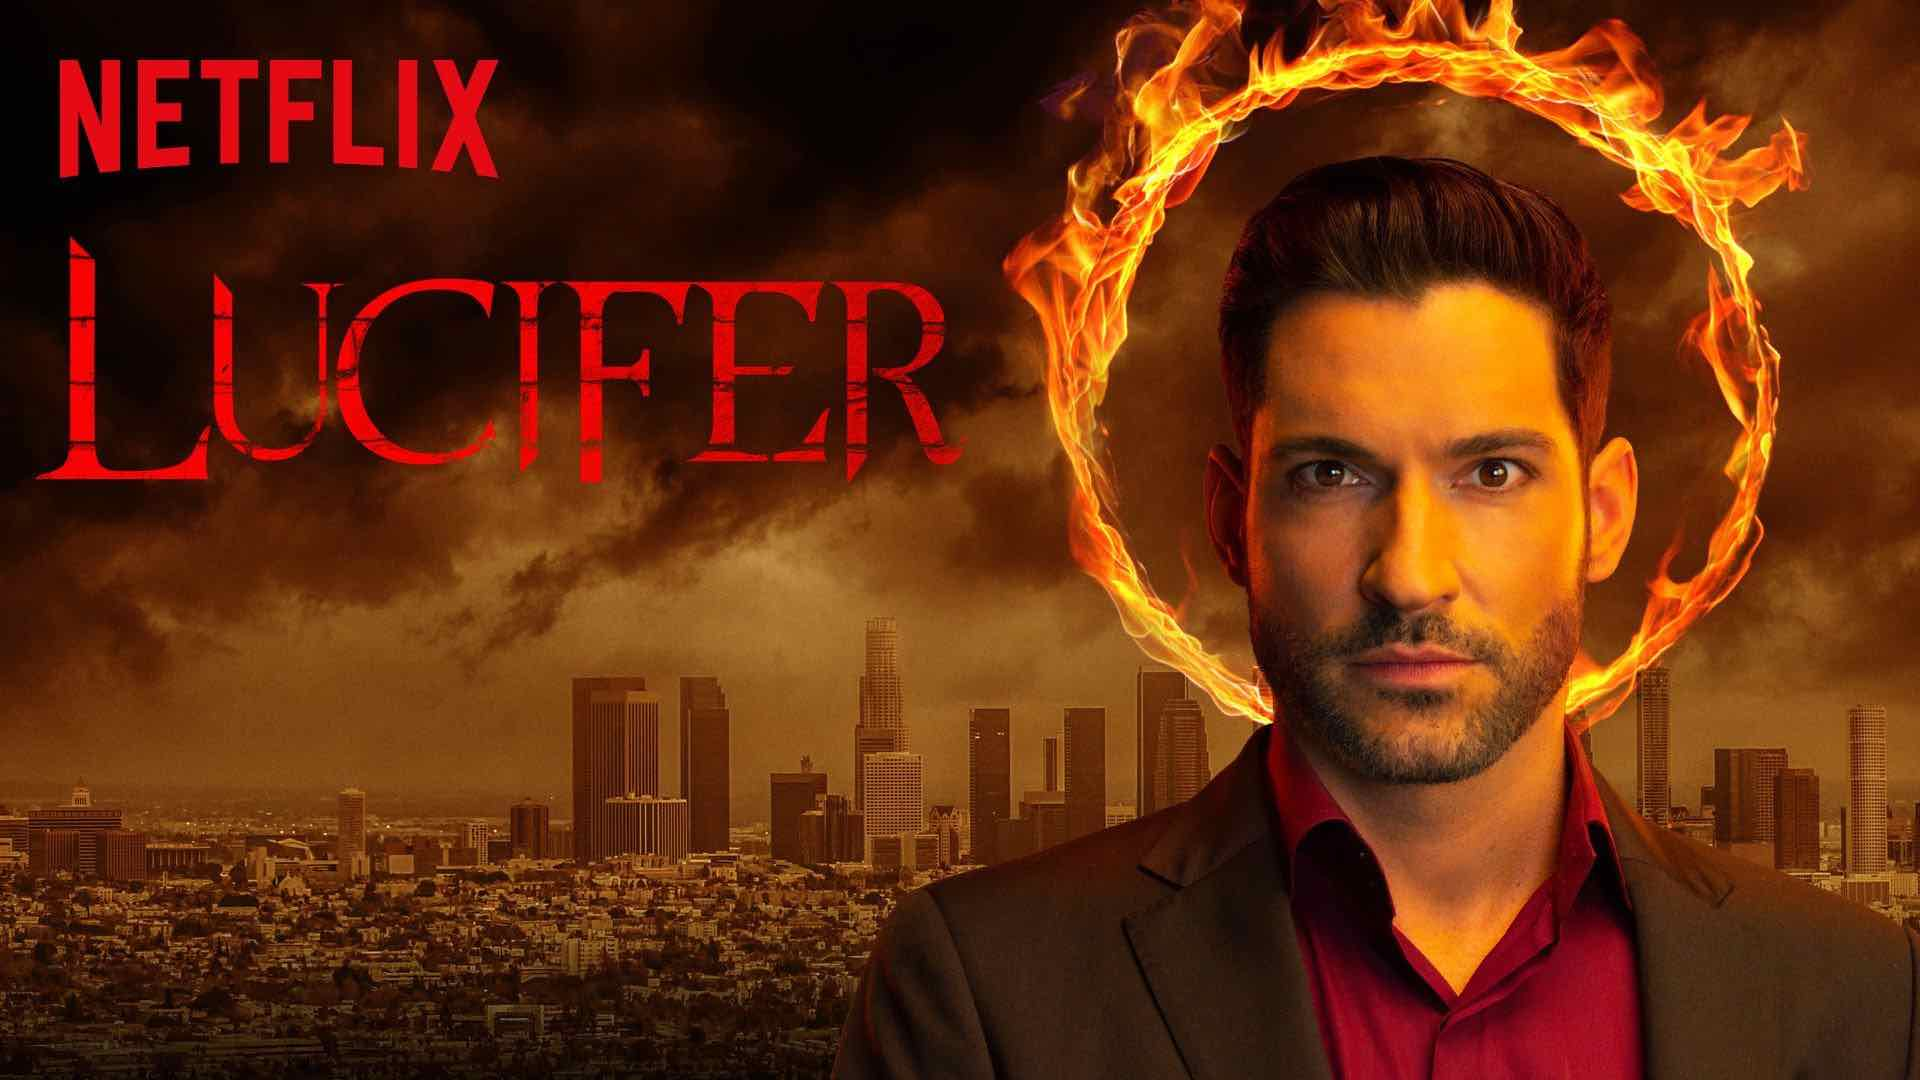 Which character of Netflix's Lucifer are you really? Dive into the pits of Hell with our Lucifer personality quiz to find out!